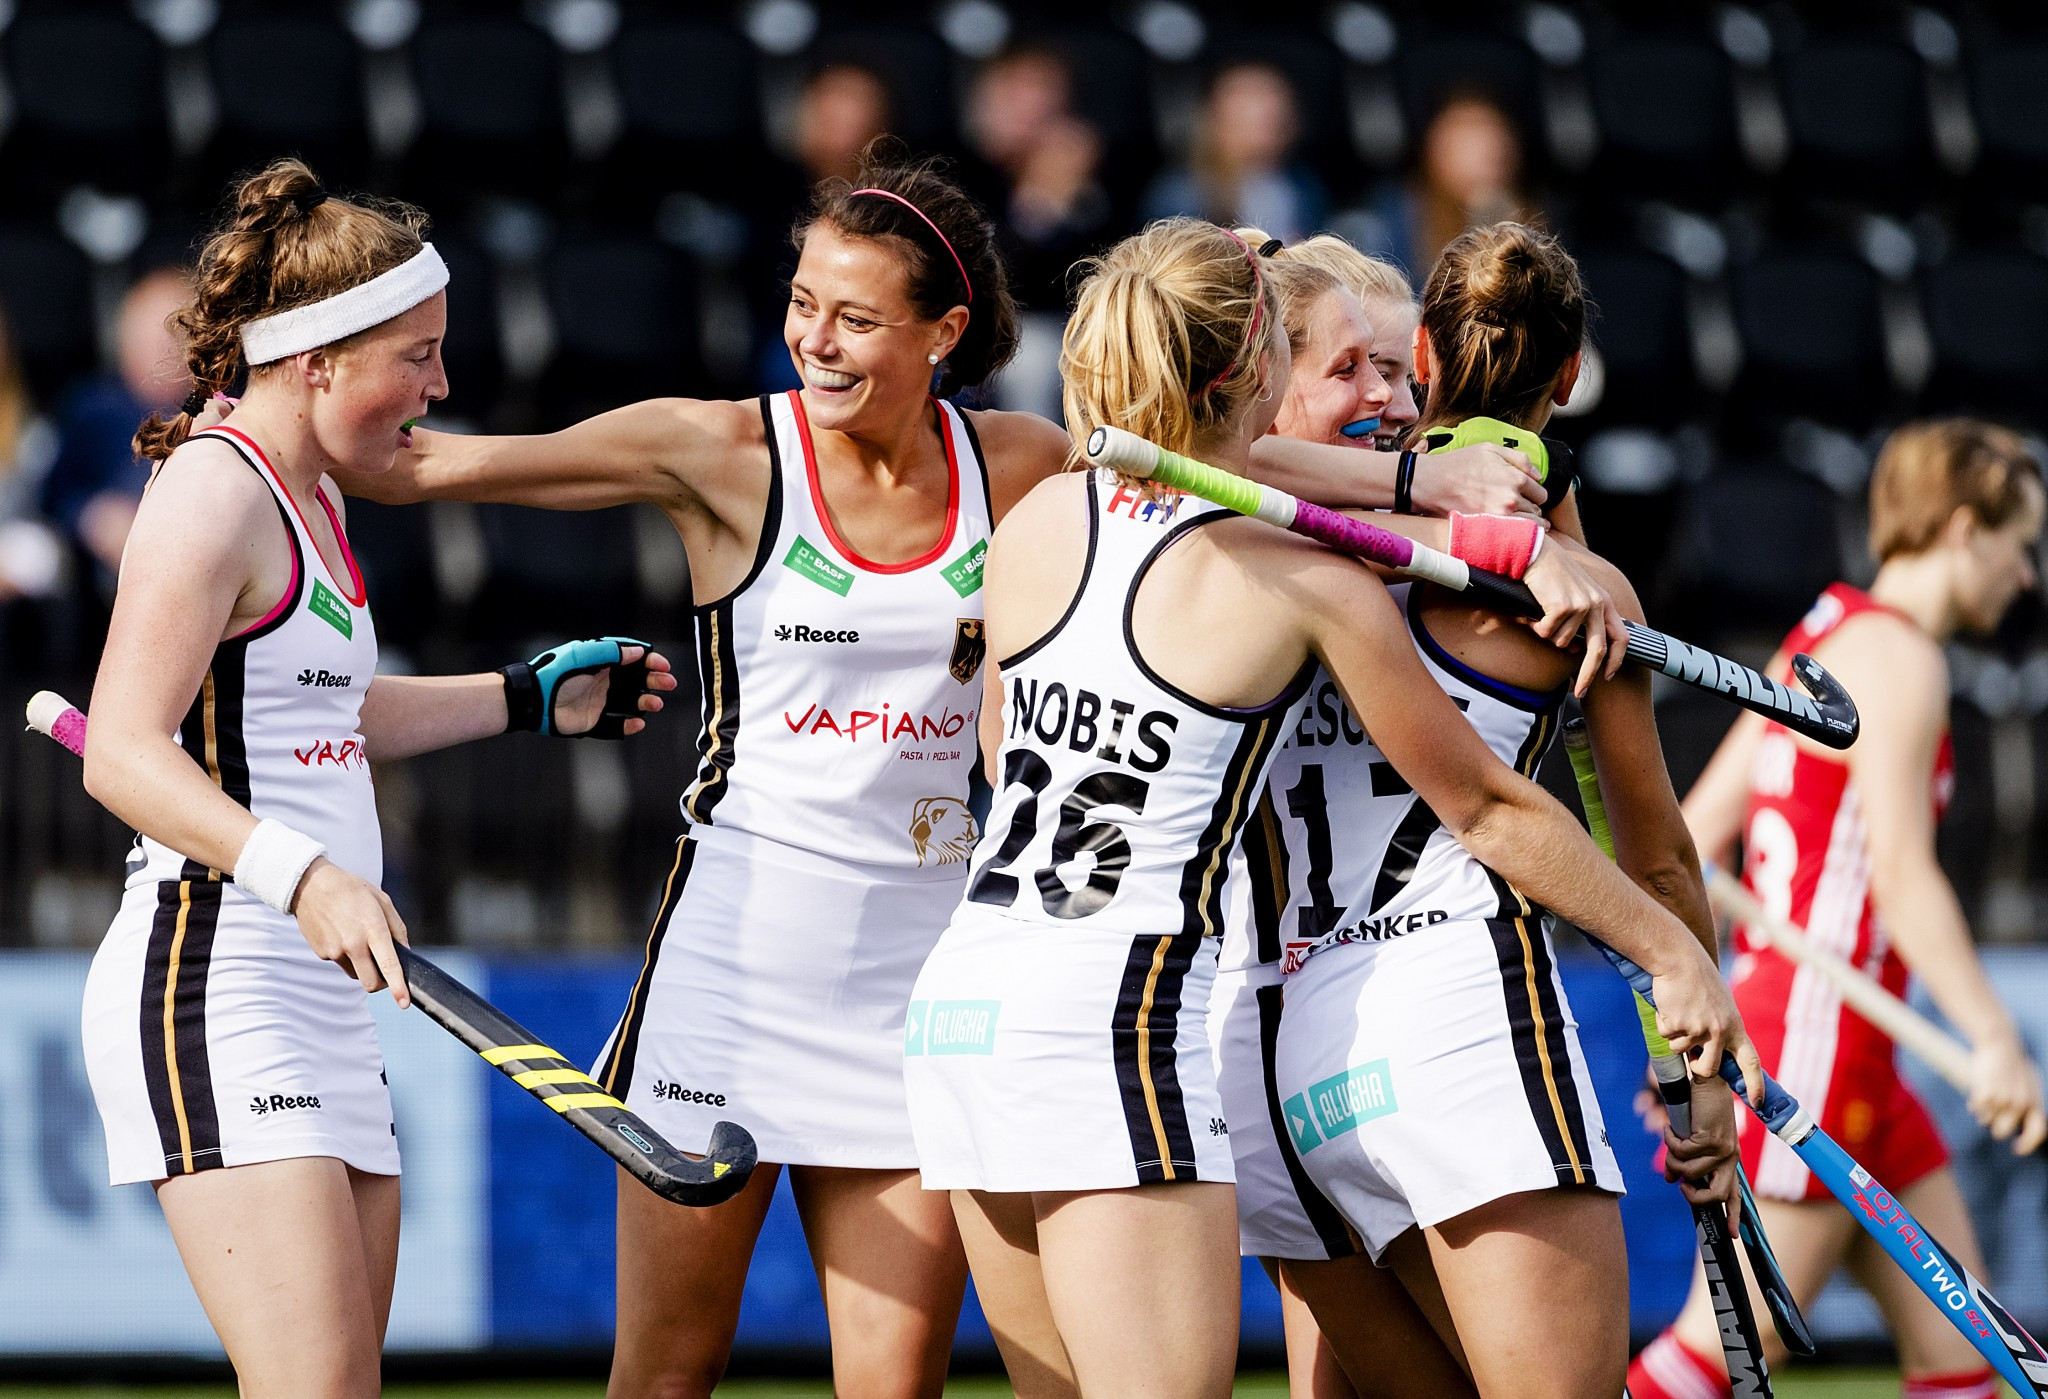 Defending champions England beaten as Germany reach EuroHockey semi-finals